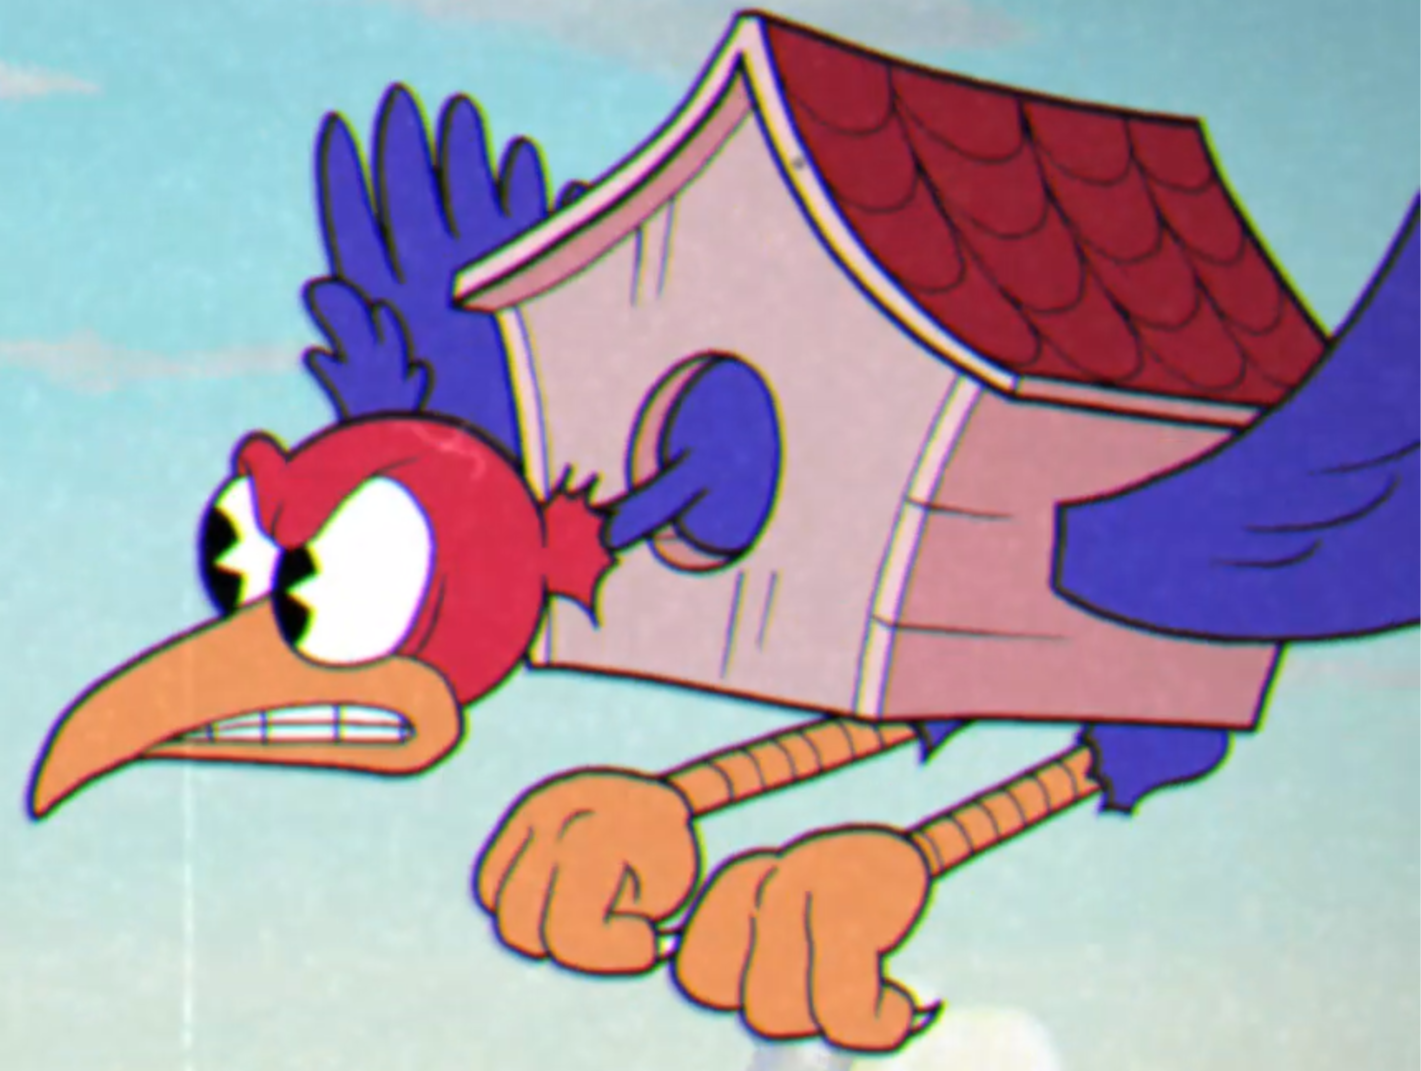 Wally warbles cuphead wiki fandom powered by wikia wally warbles altavistaventures Choice Image